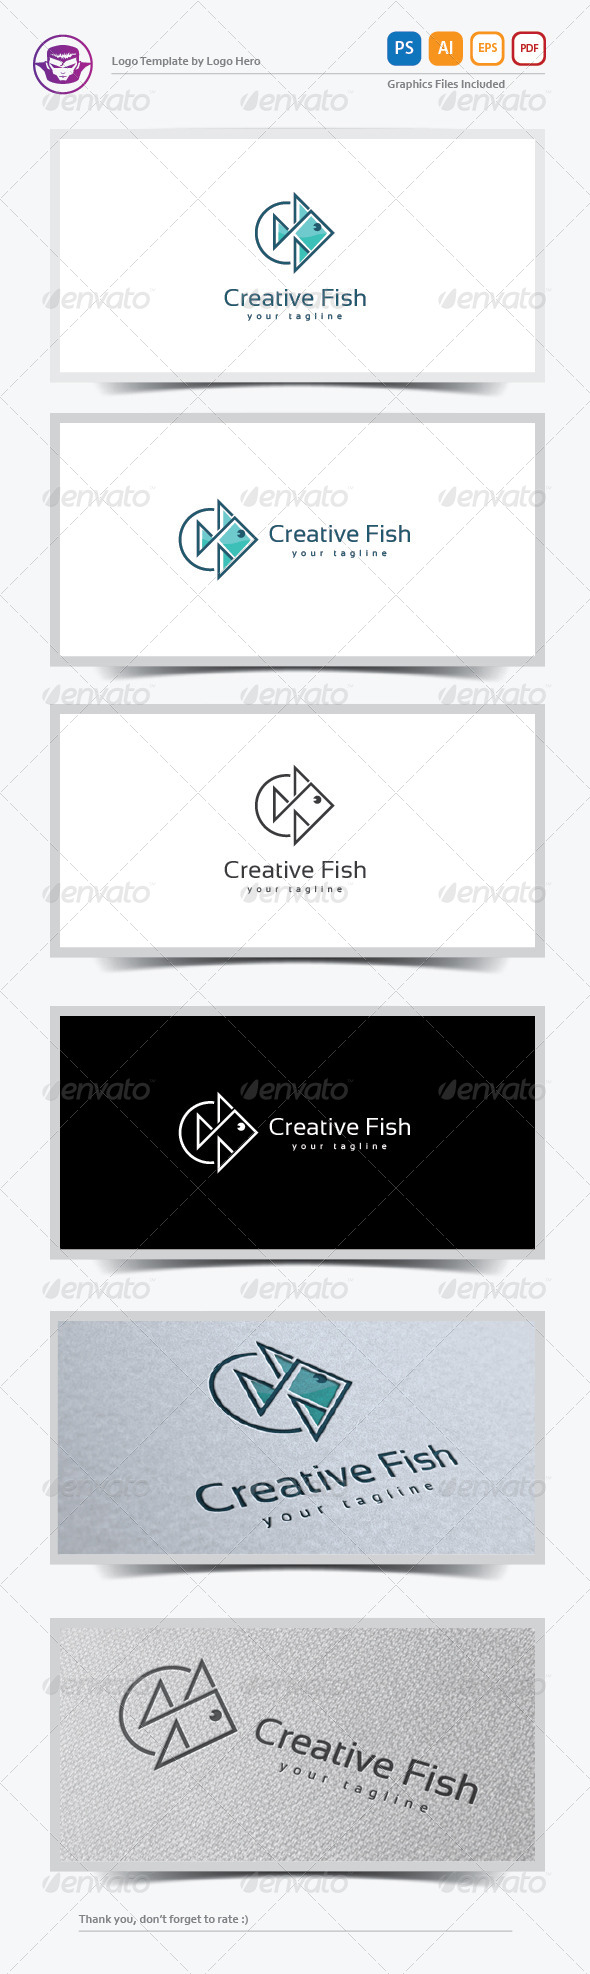 Creative Fish Logo Template